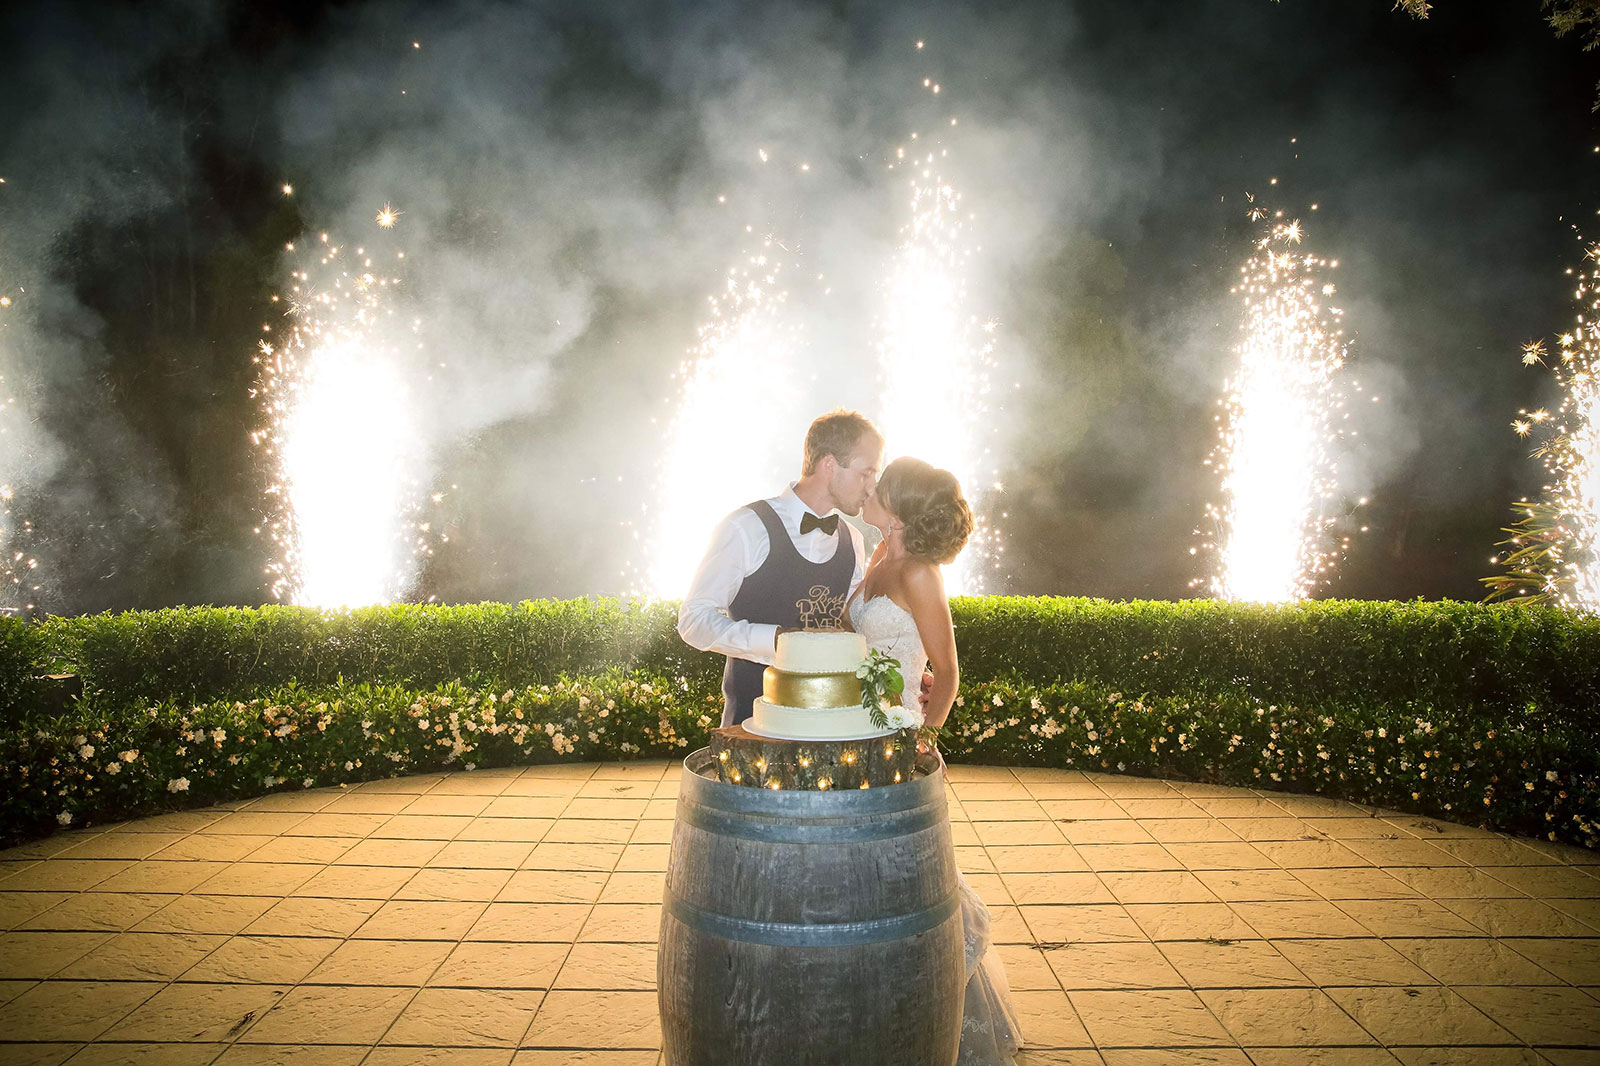 weddings-all-fired-up-fireworks-stage-fx-2018-1